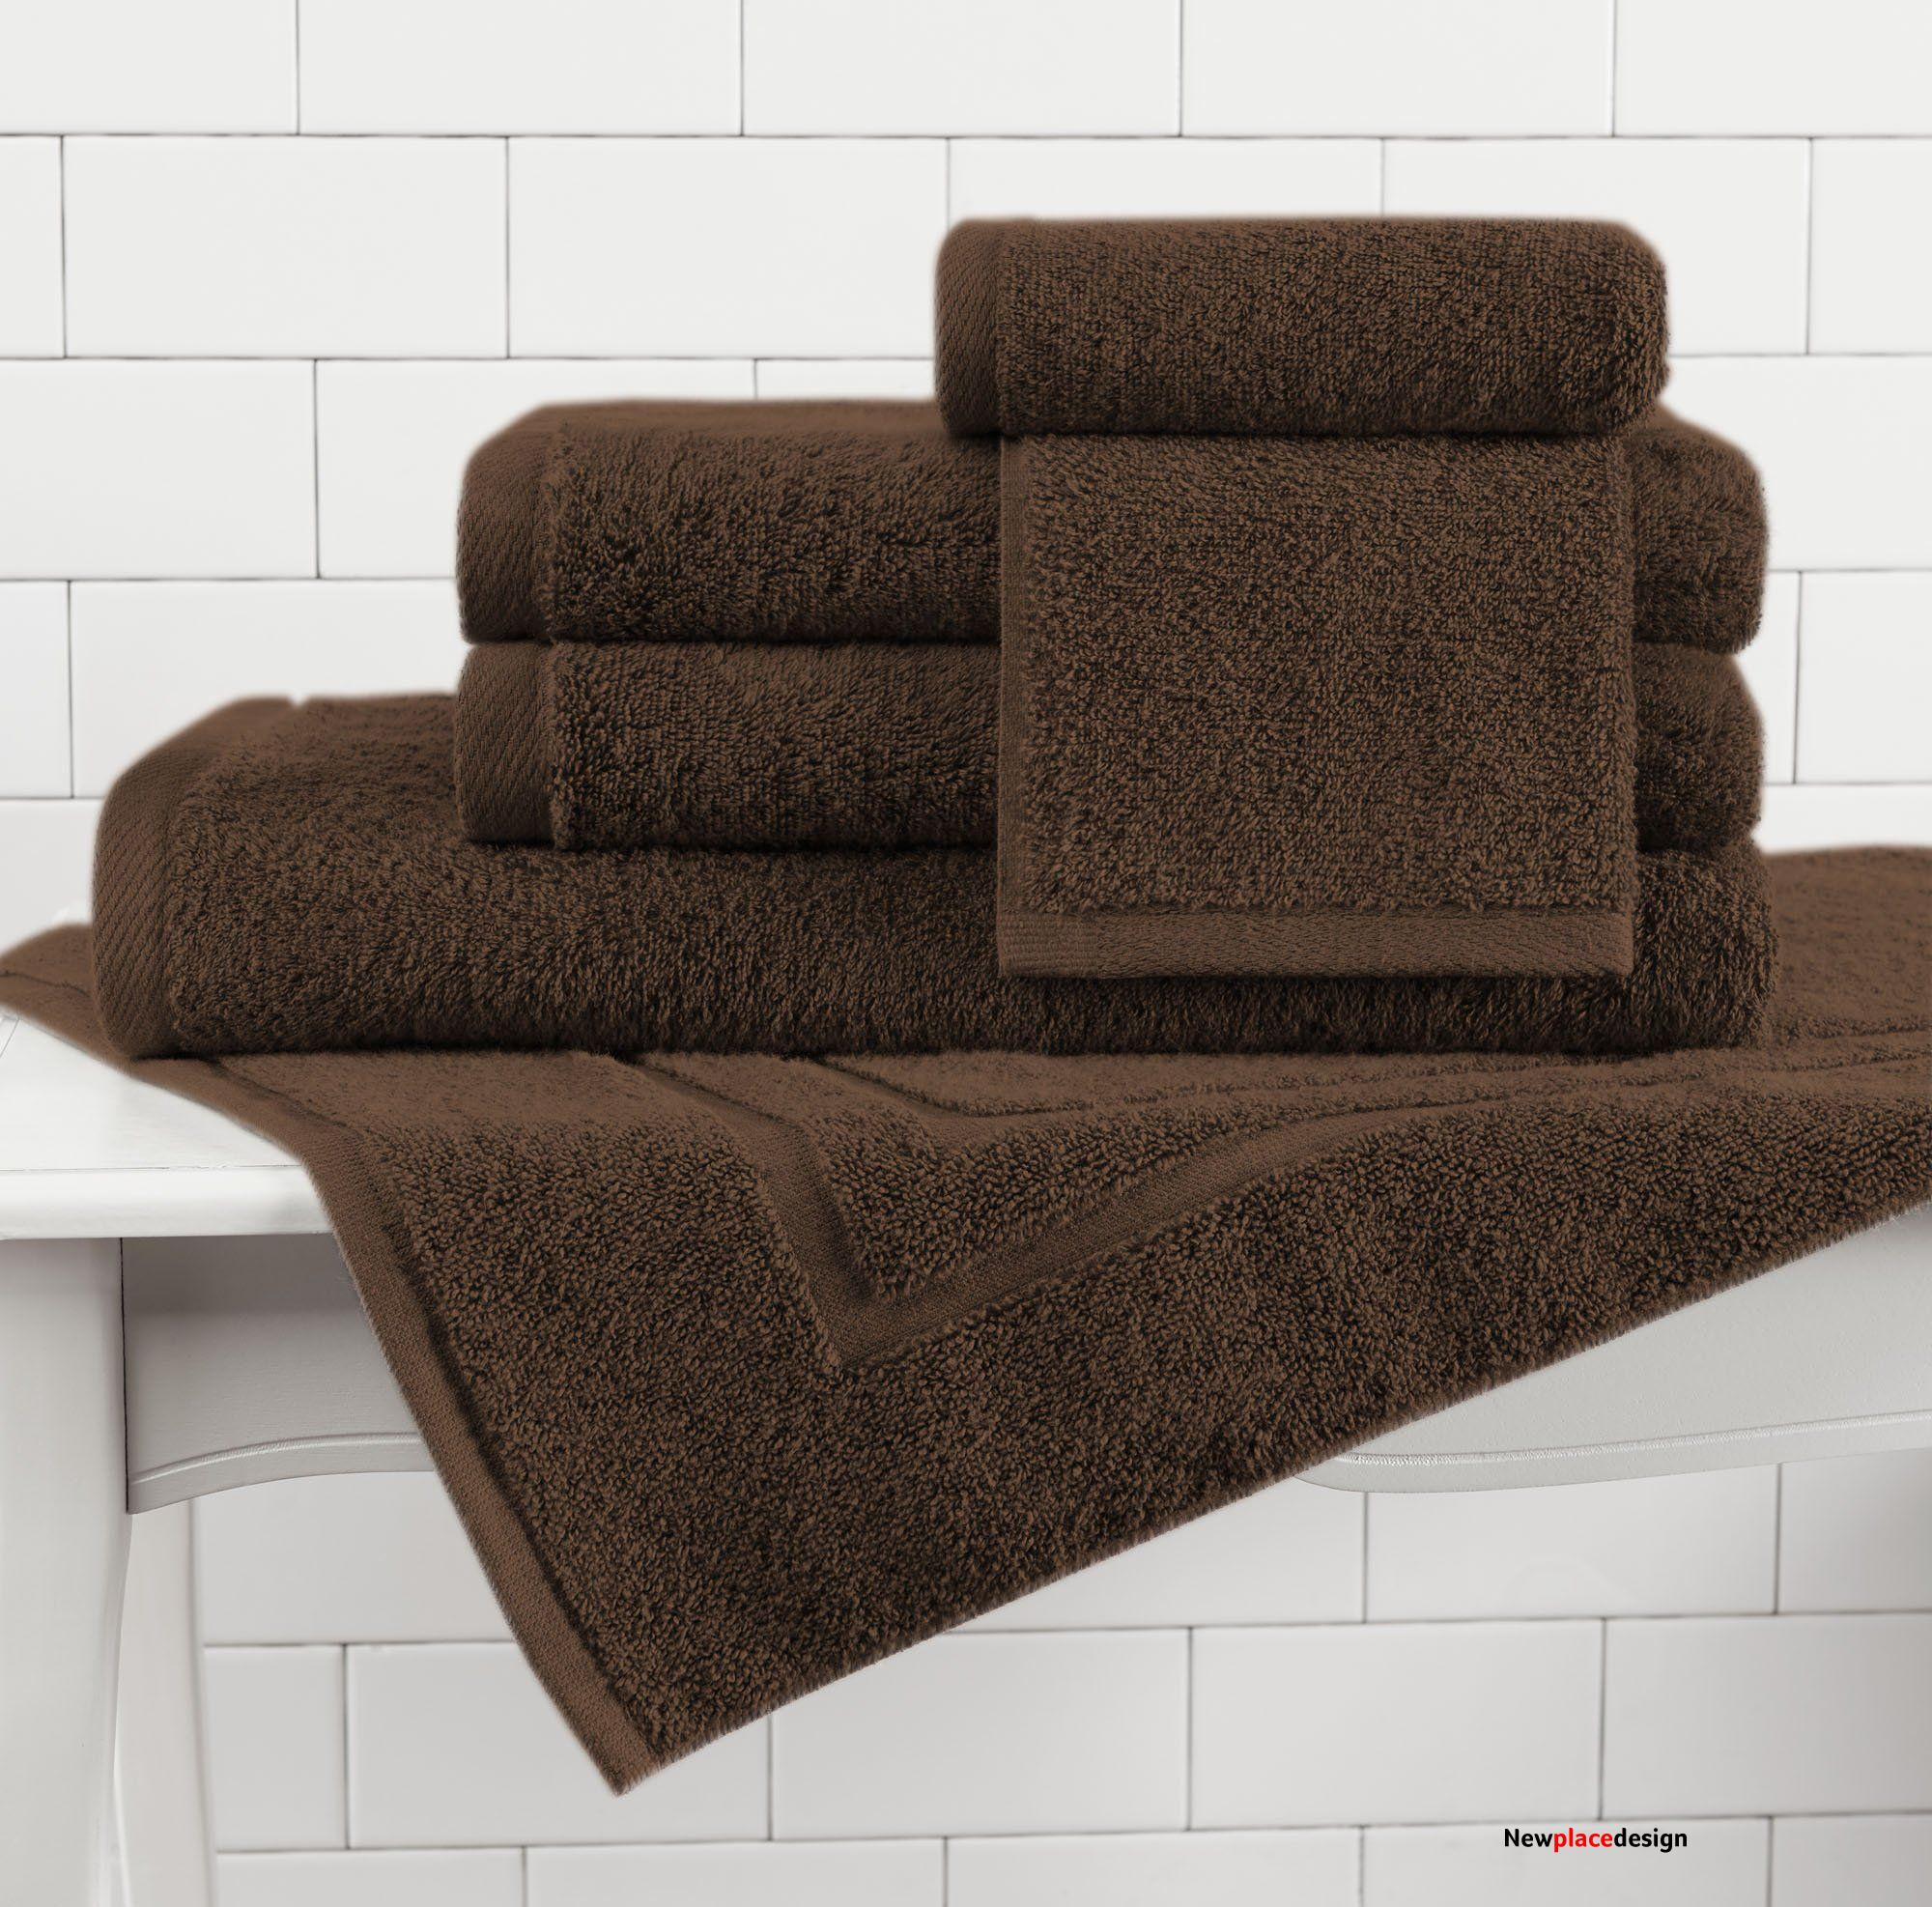 Made in the USA 100% Cotton Luxury Towels - Coco / **Special 4-Piece Set** (1 Bath Sheet, 1 Hand Towel, 2 Wash Cloths)